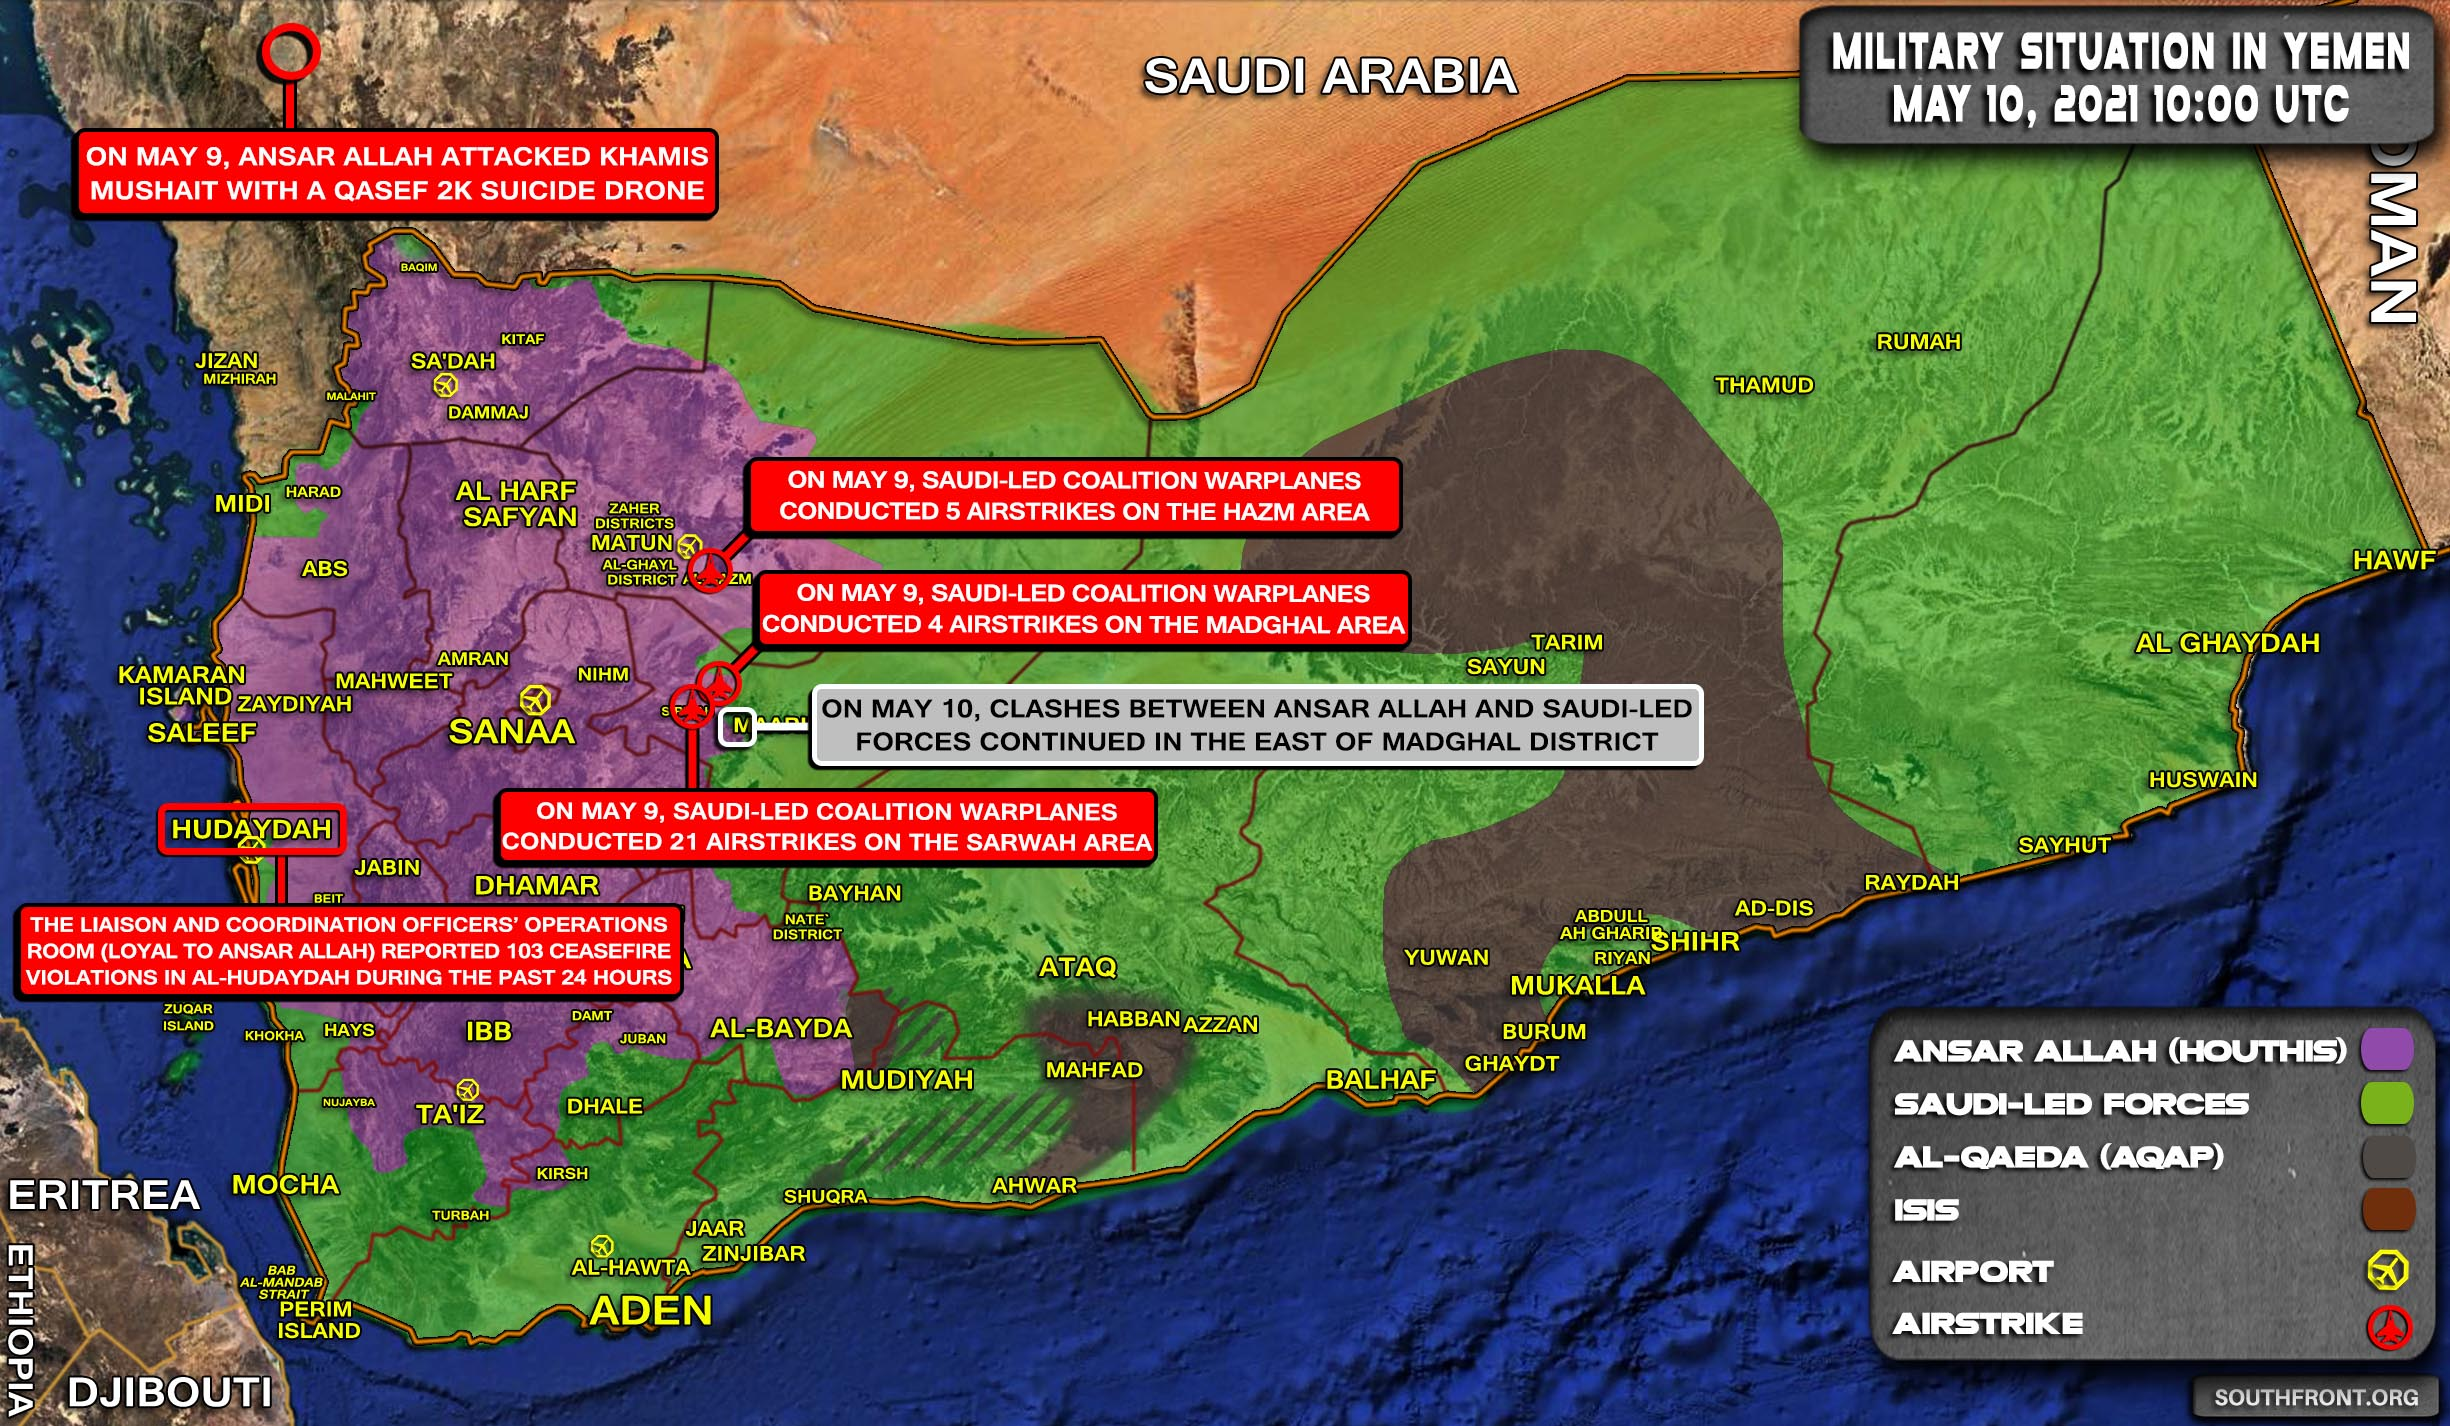 Military Situation In Yemen On May 10, 2021 (Map Update)